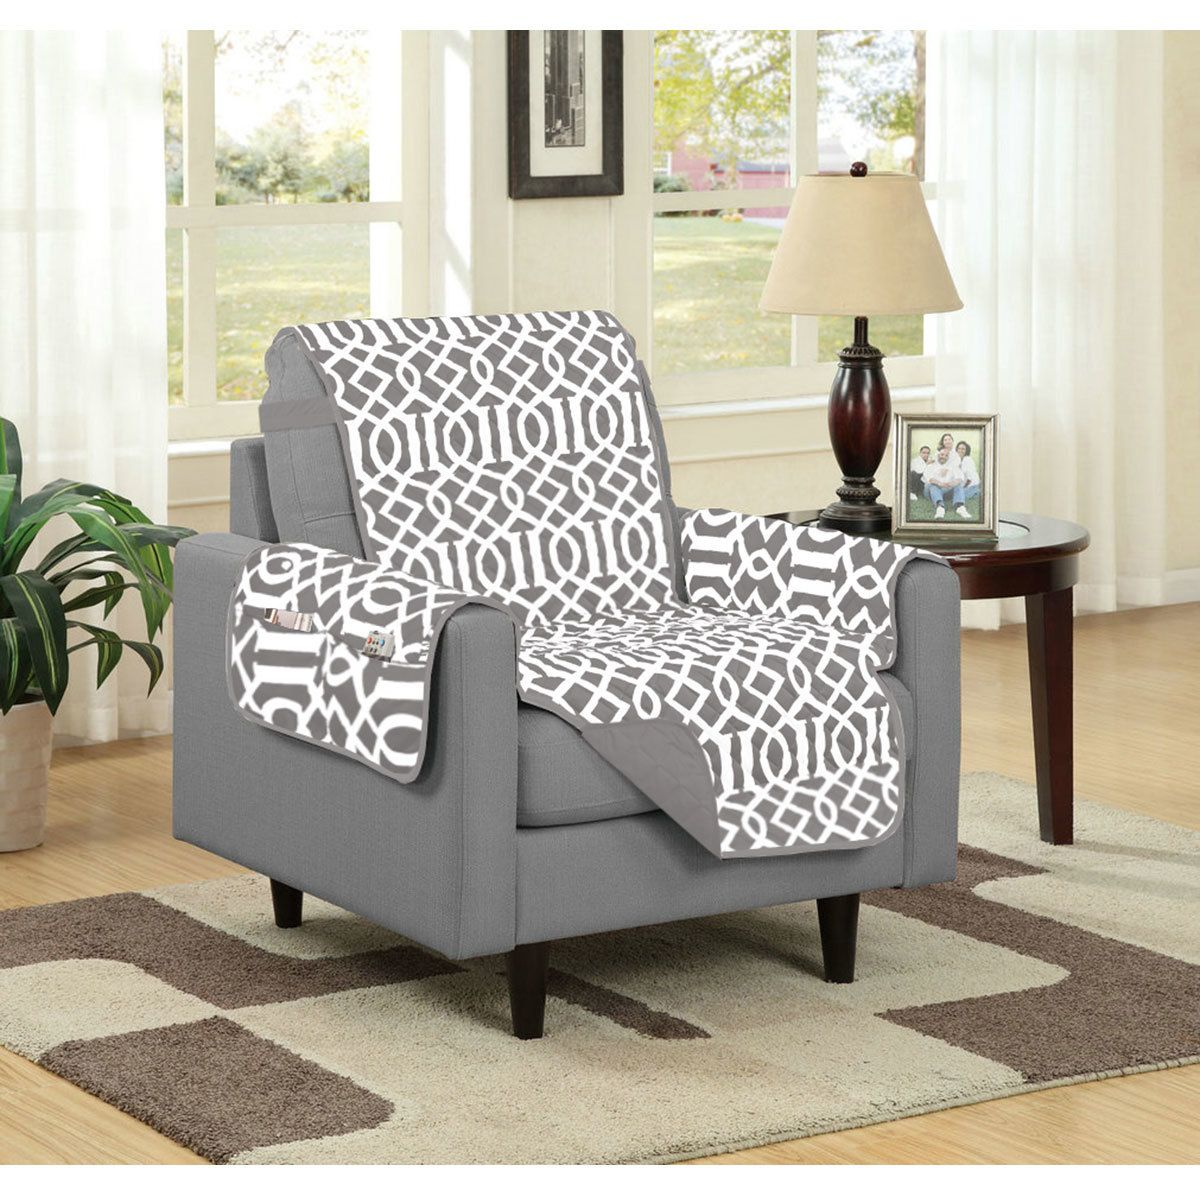 Luxury Gray Microfiber Chair